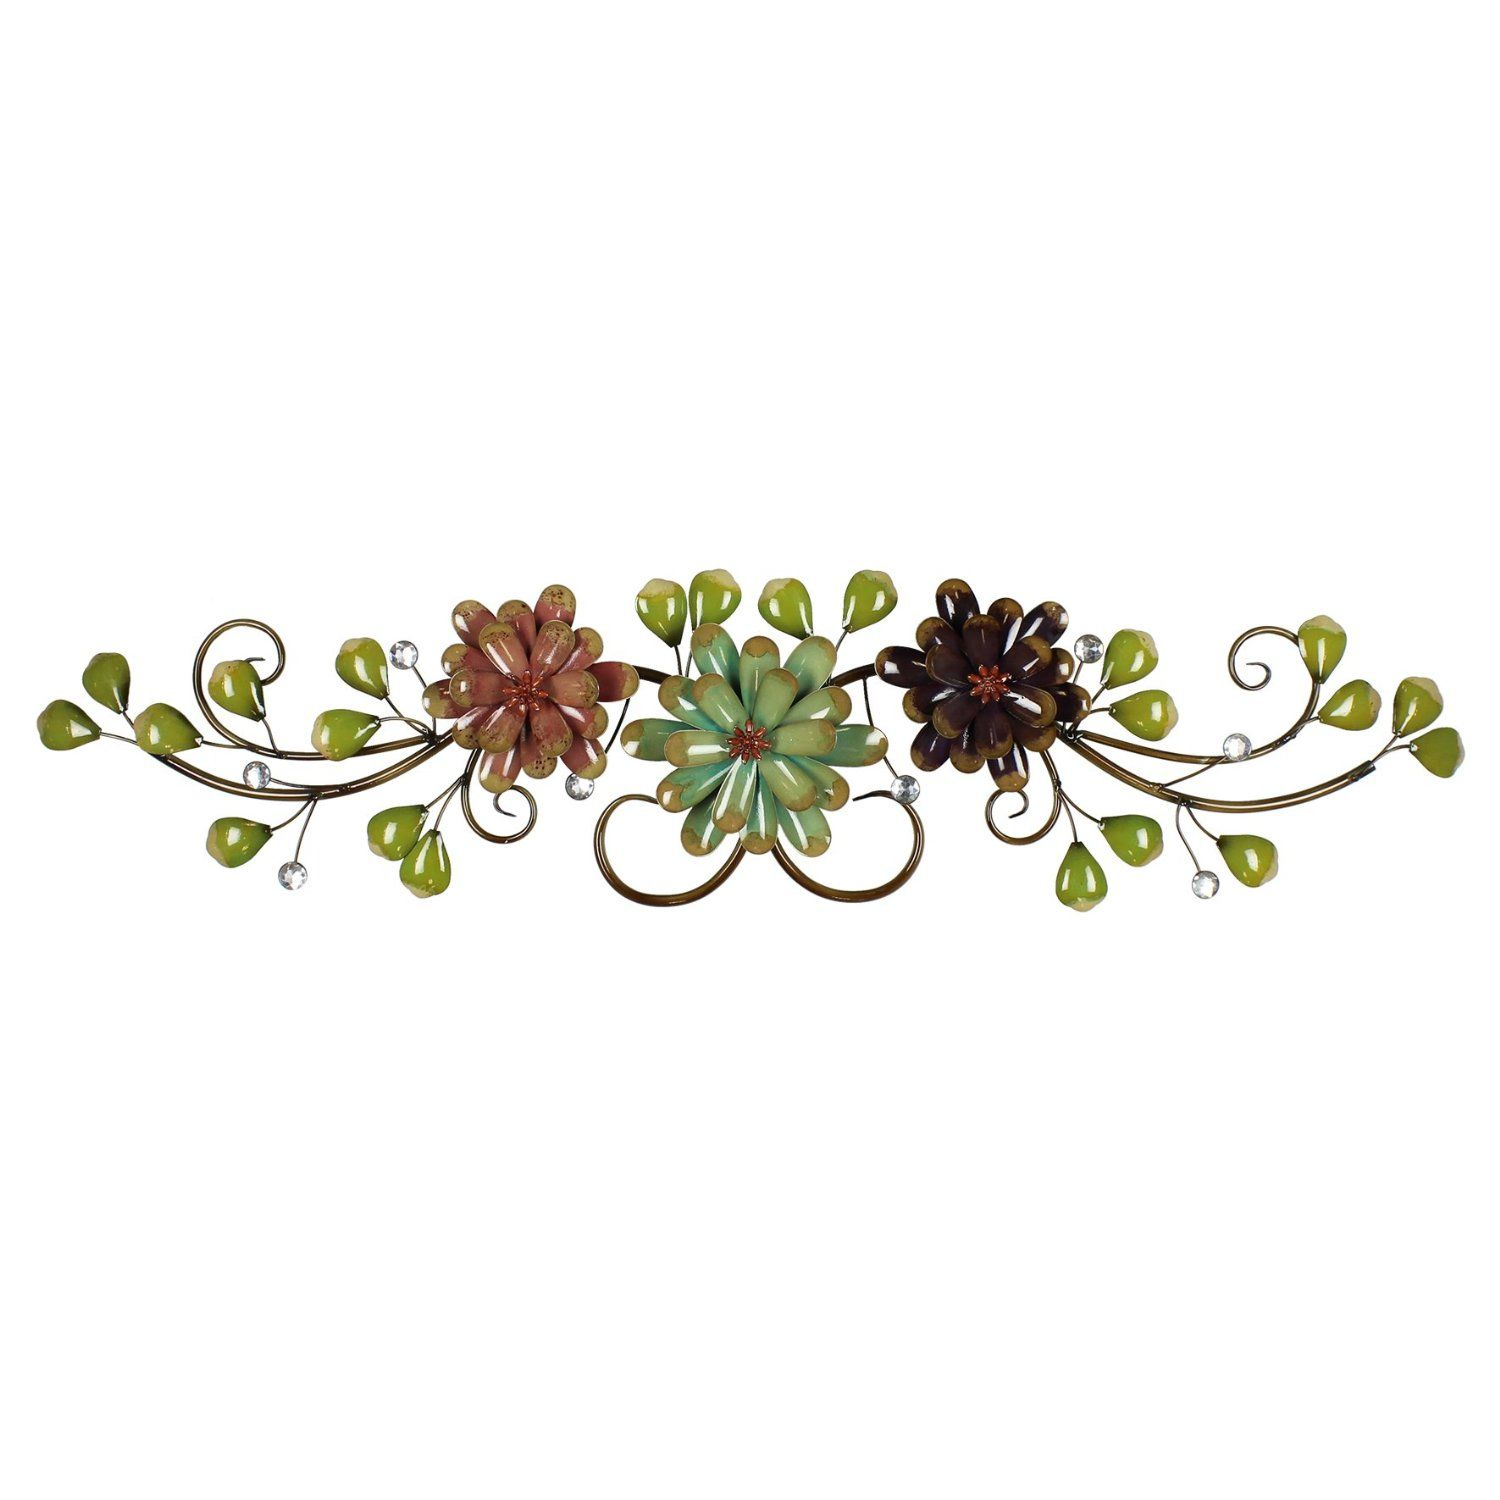 Flower and Leaf Spray Colourful Floral Metal Wall Art Display